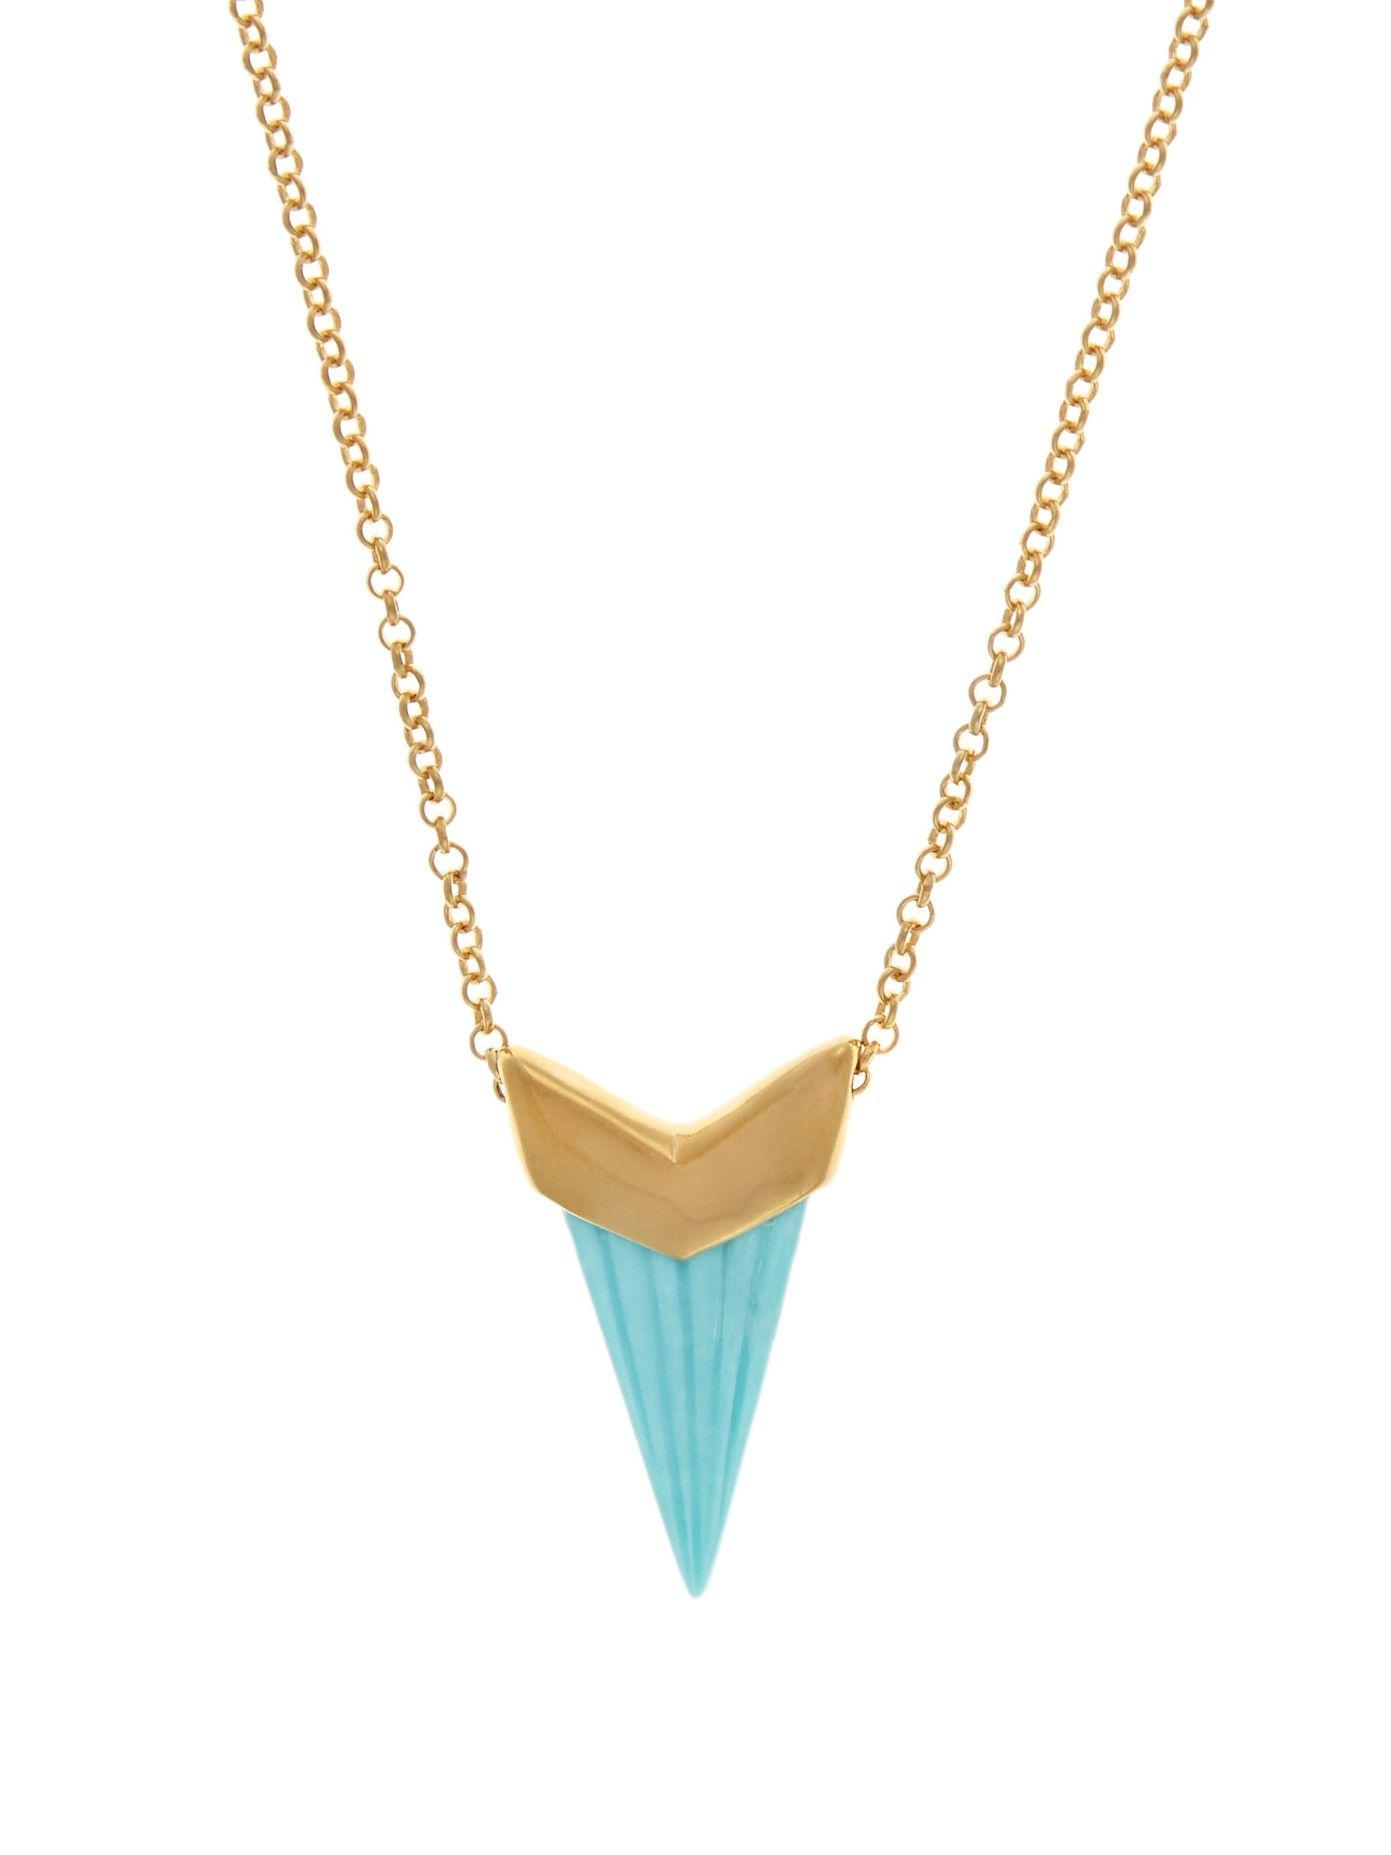 Inspired by her time in Jaipur, a bohemian spirit permeates Theodora Warre's collections. This 18kt yellow-gold plated sterling-silver necklace features an arrow-shaped pendant, and ends with a delicate turquoise-stone tip. It's an effortless way to bring free-spirited charm to contemporary evening dresses.